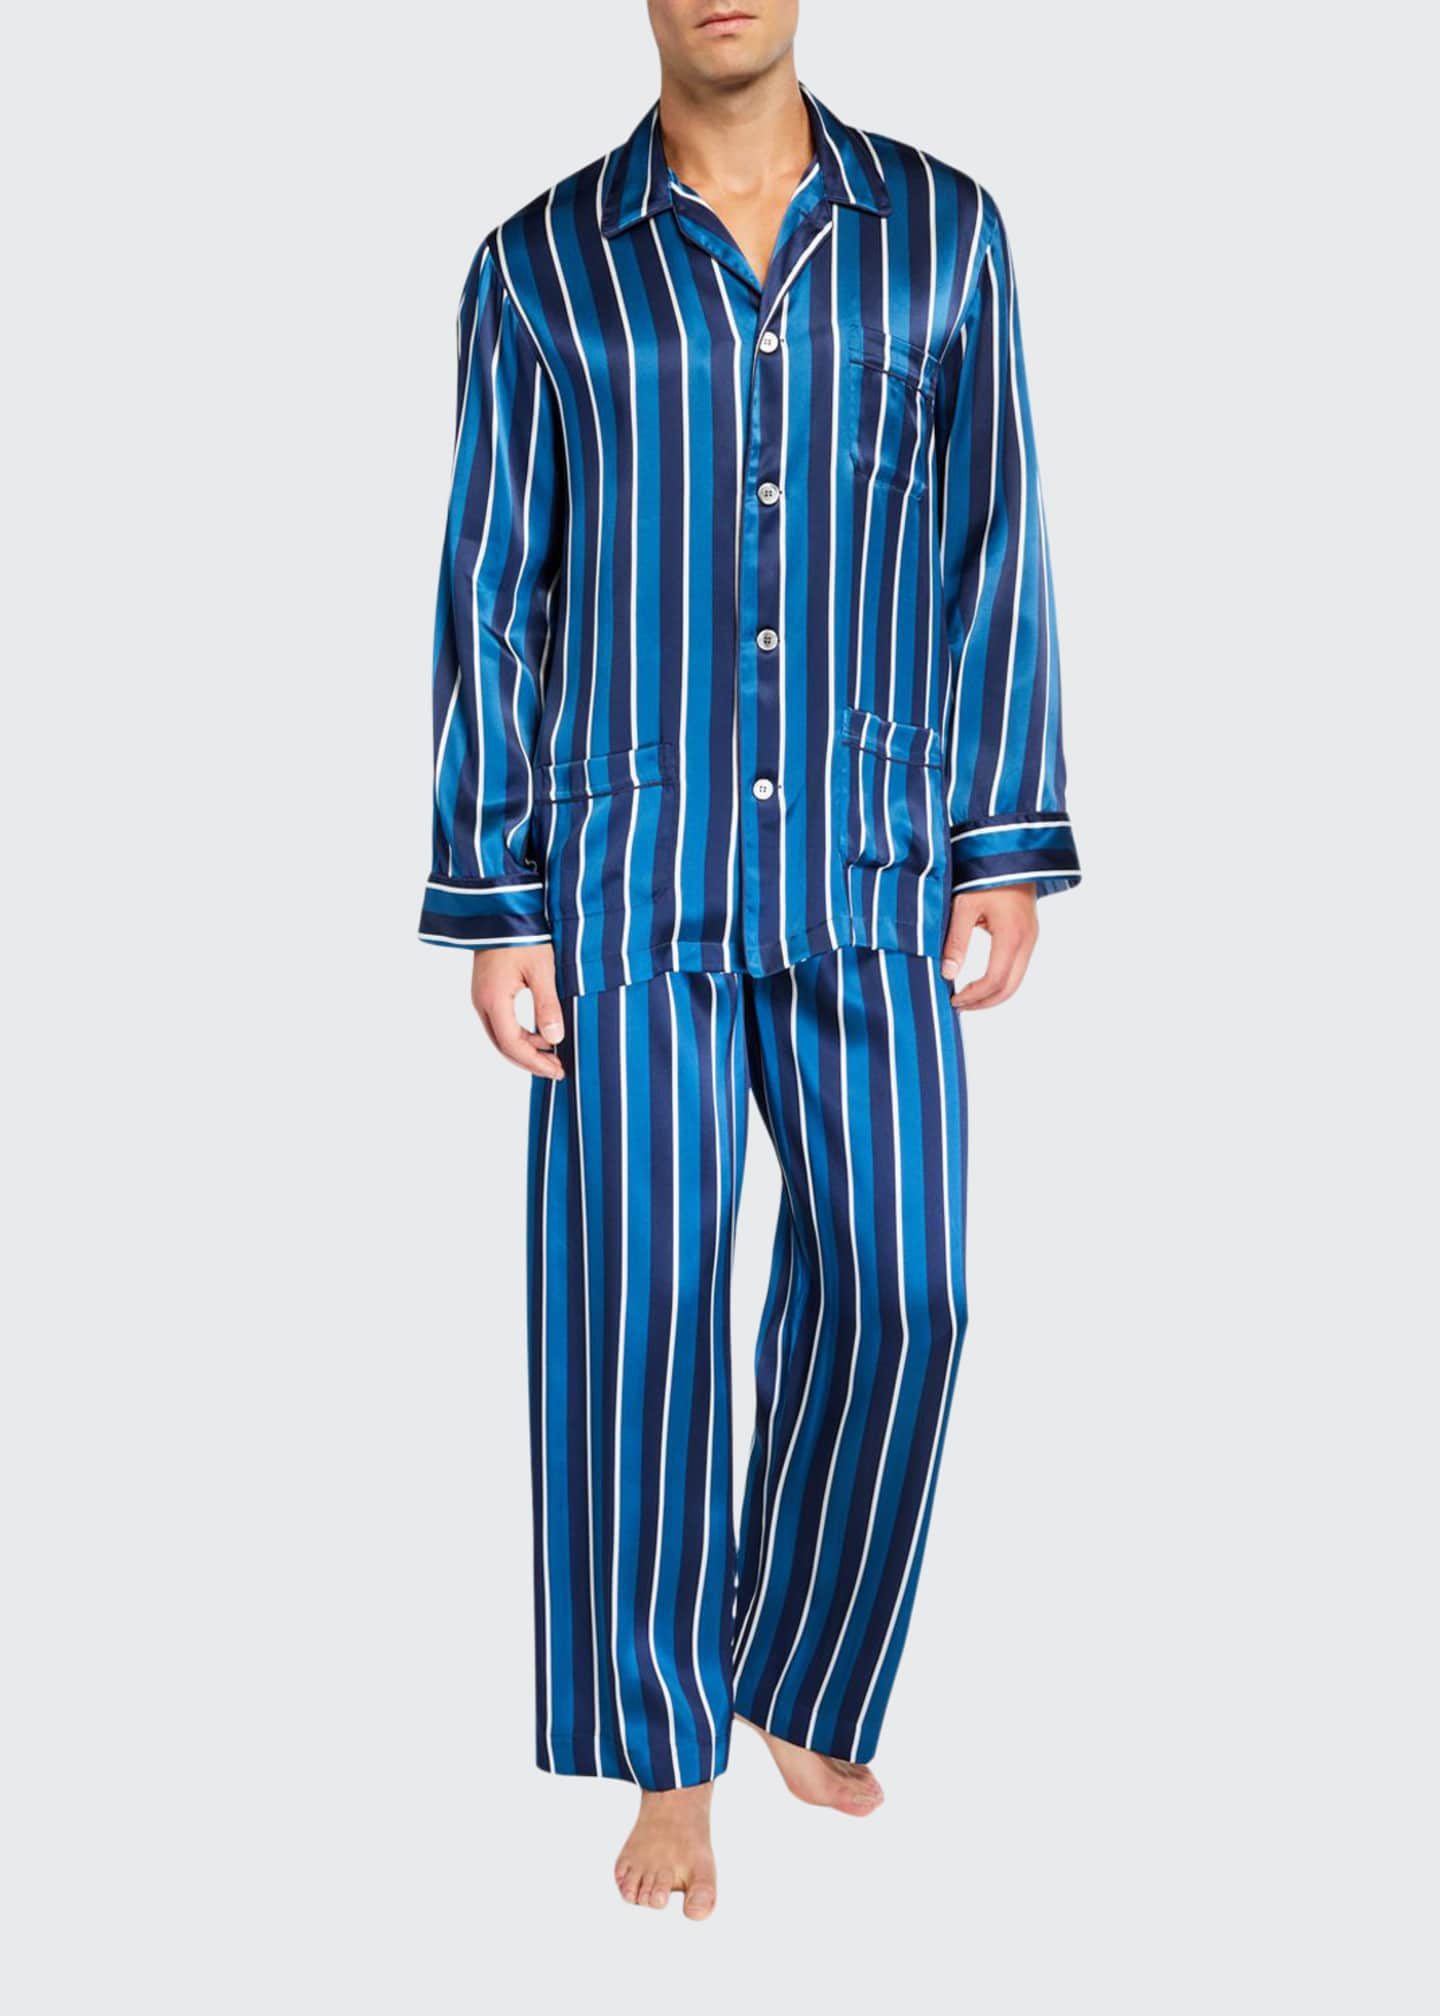 Derek Rose Men's Brindisi 40 Striped Silk Pajamas